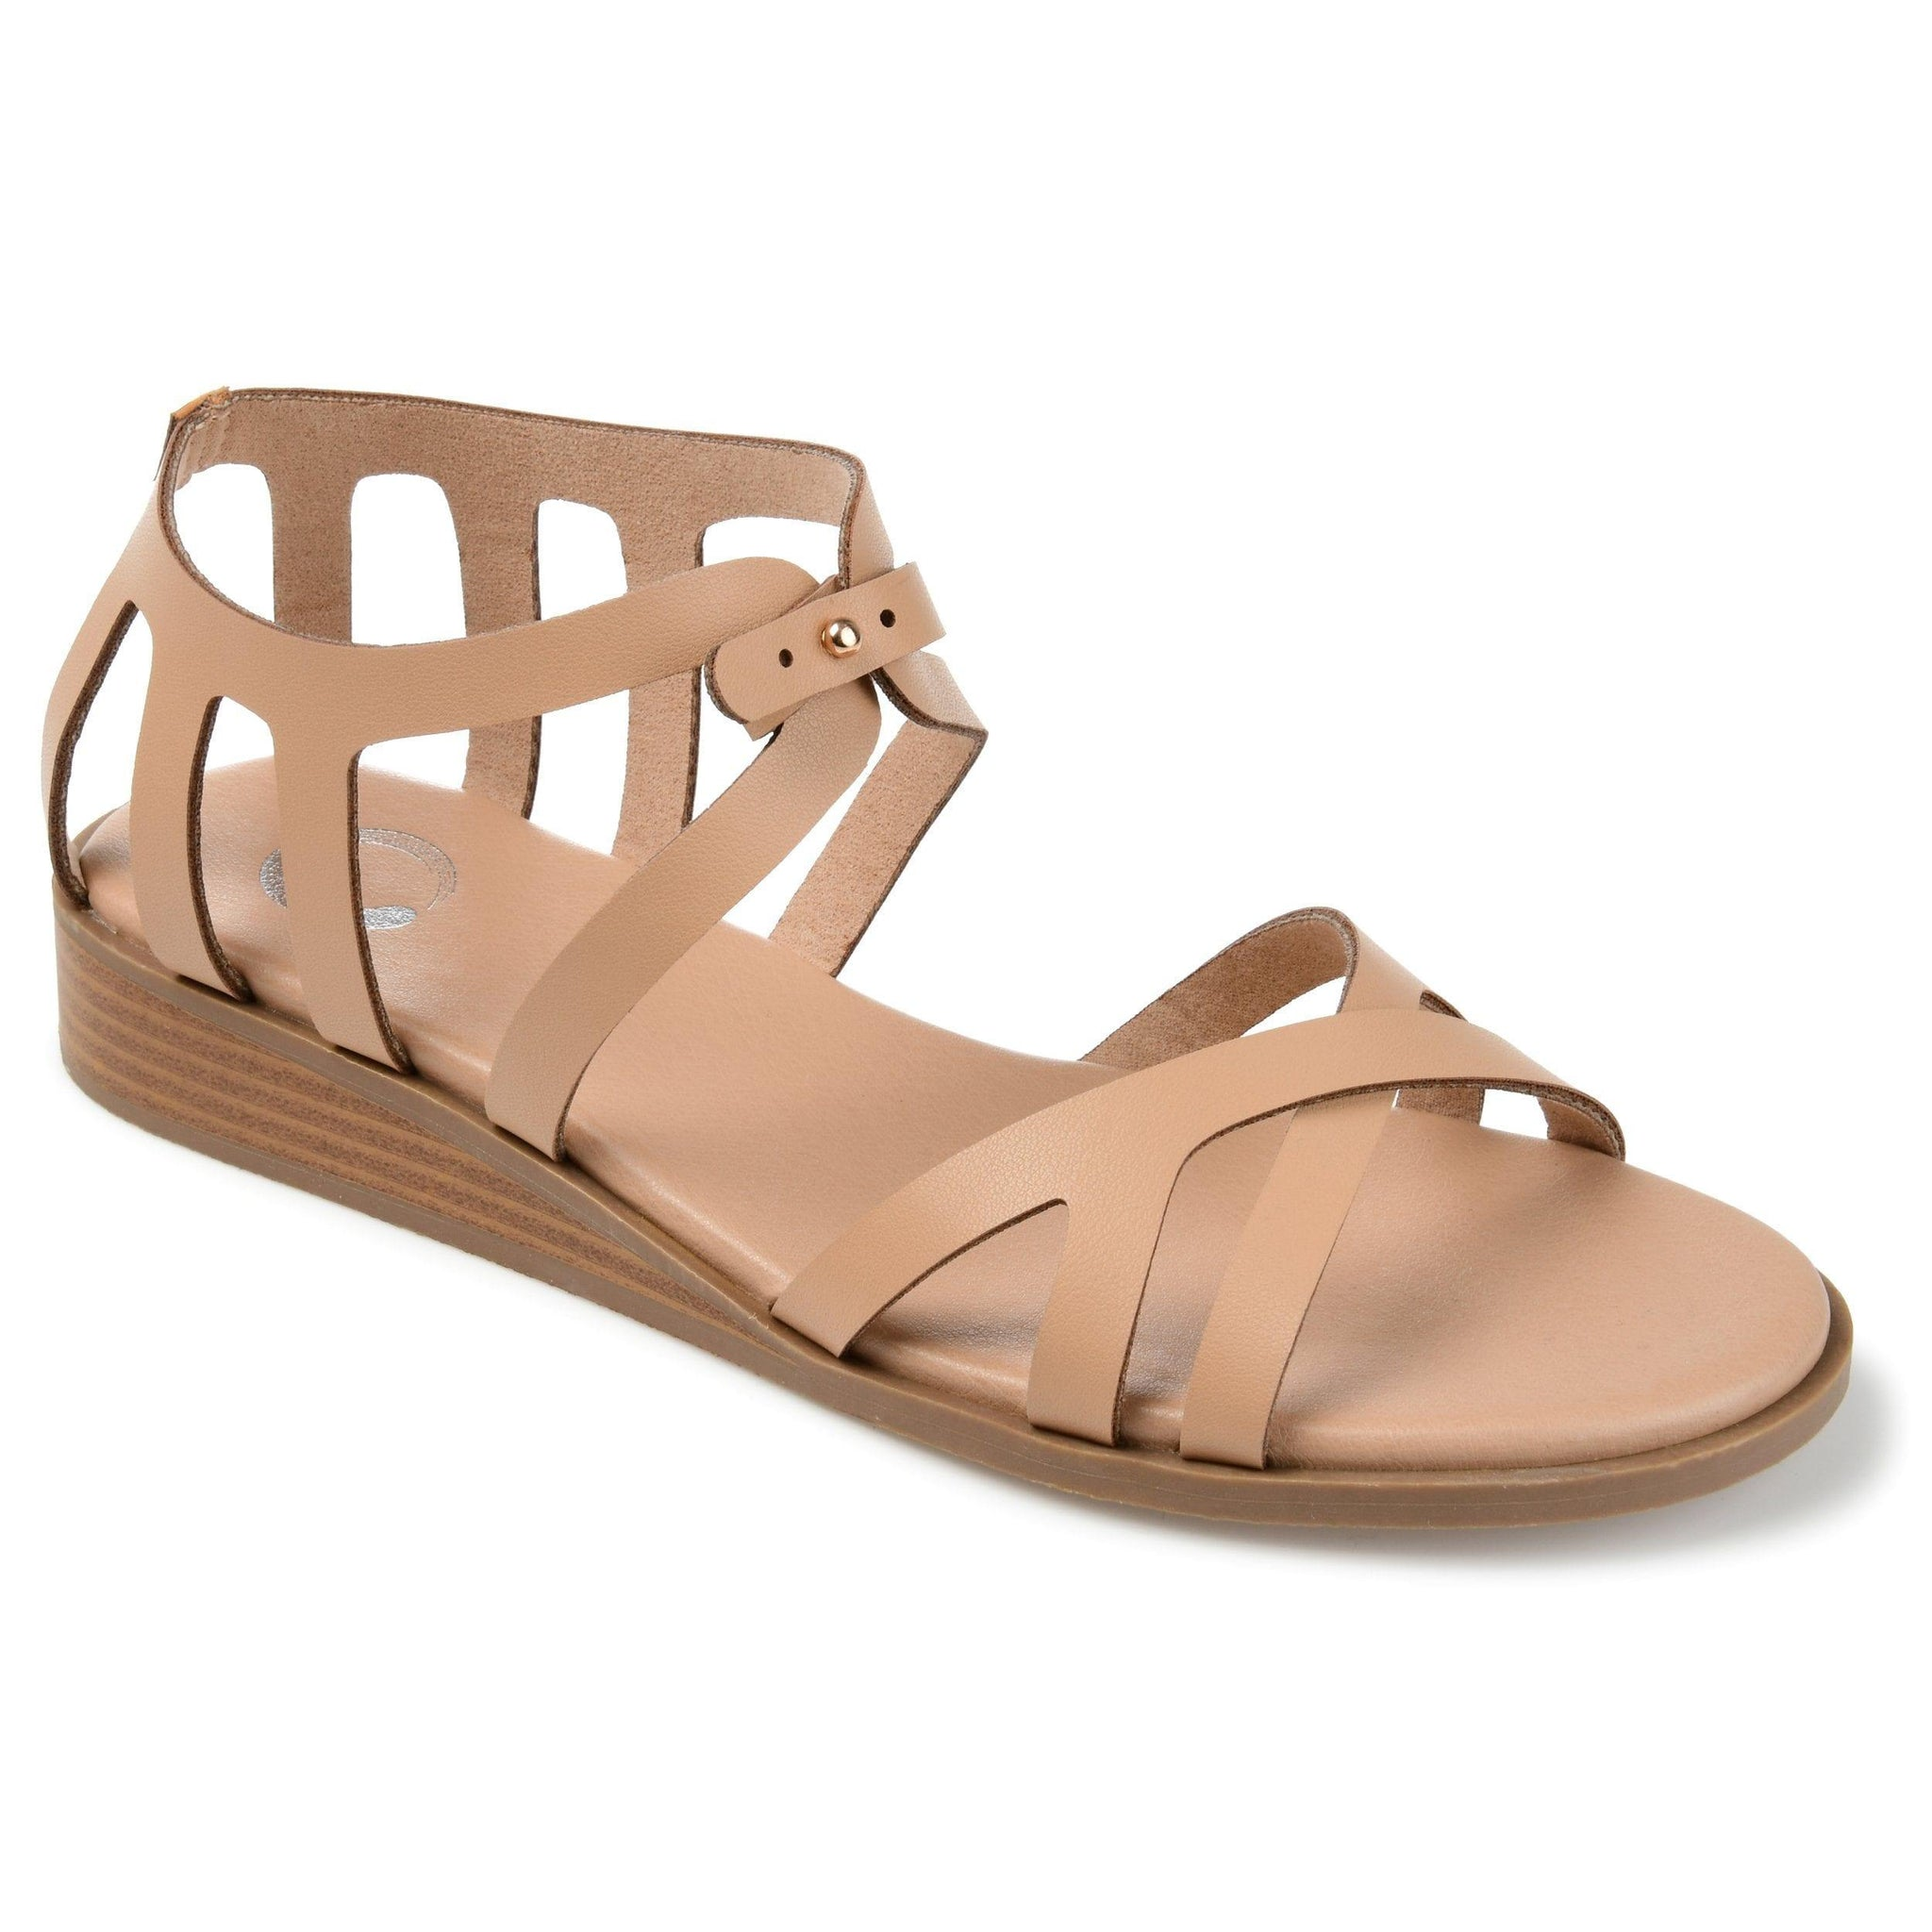 MONRO SHOES Journee Collection Tan 8